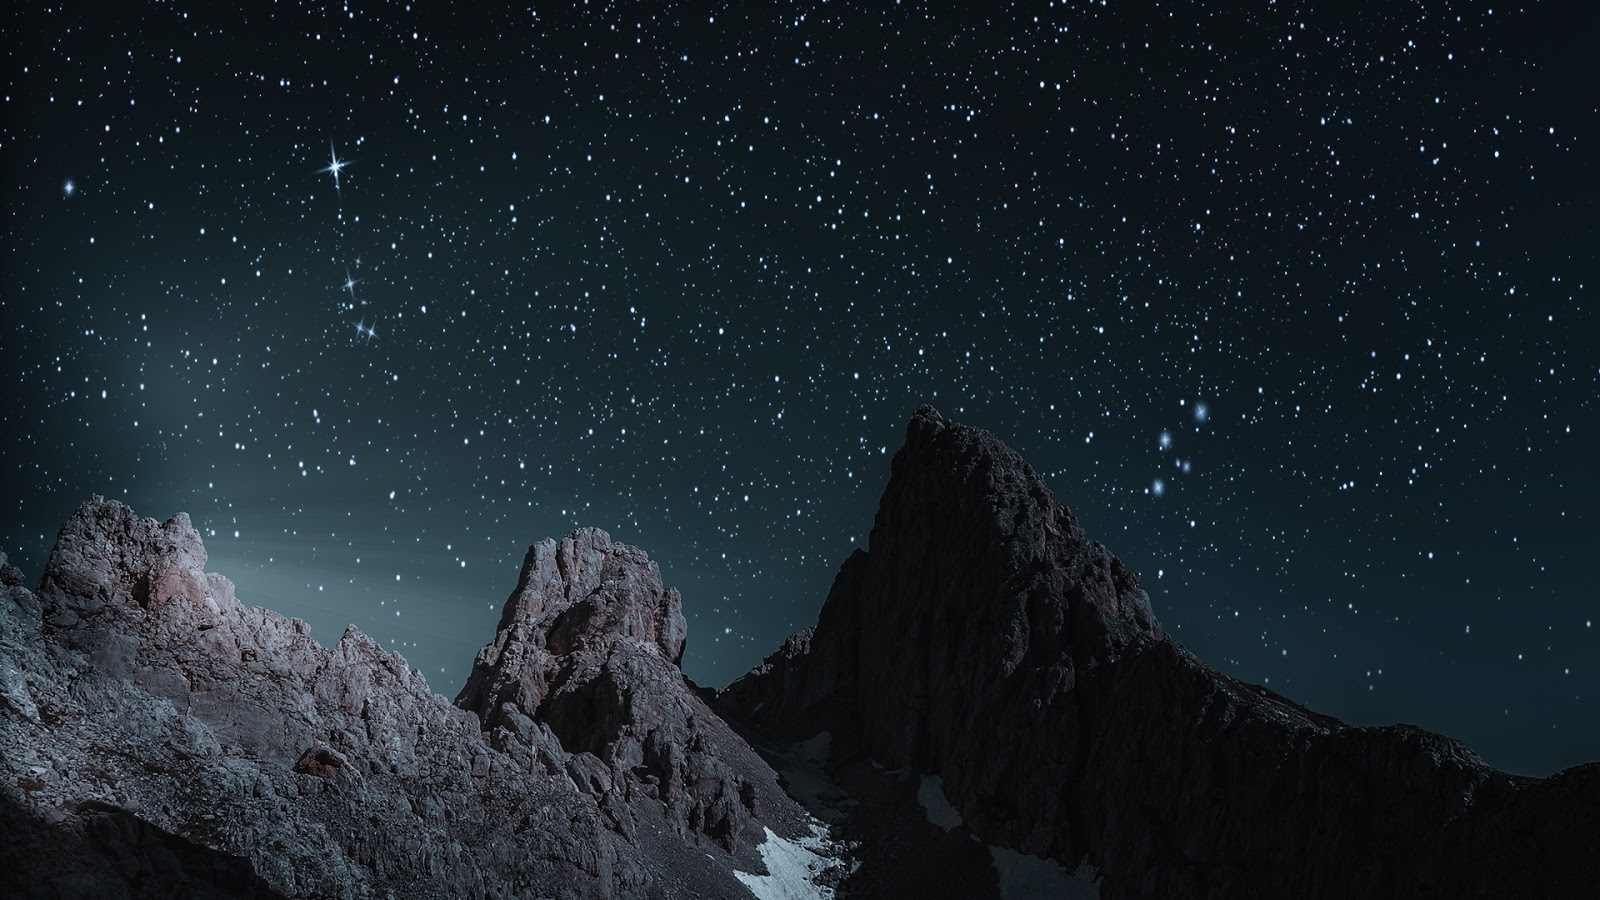 Hd Nature Wallpapers Dark Sky And Mountains Hd Wallpaper